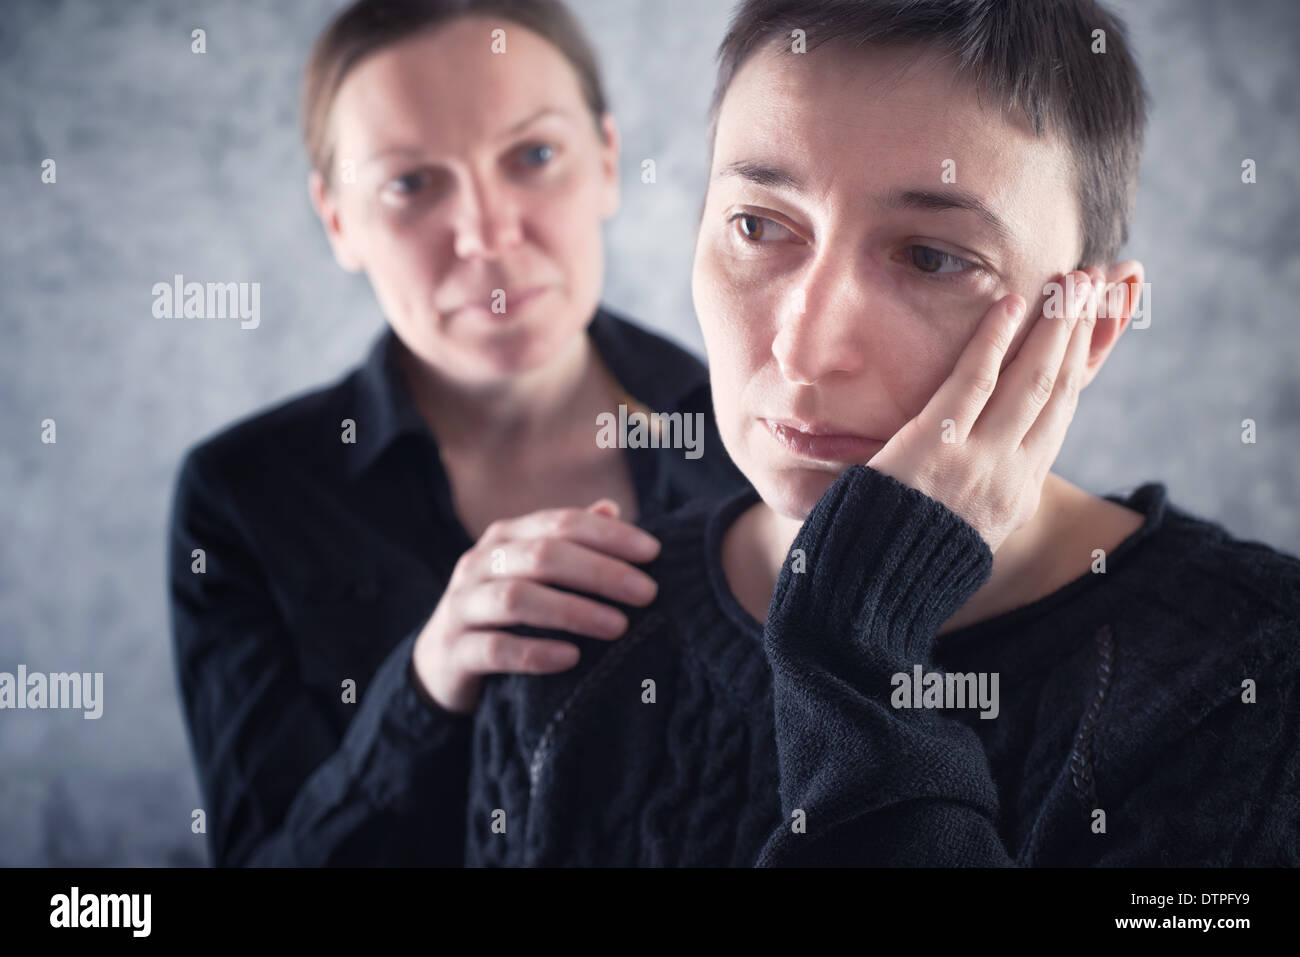 Comforting friend. Woman consoling her sad friend with hand on shoulder. - Stock Image